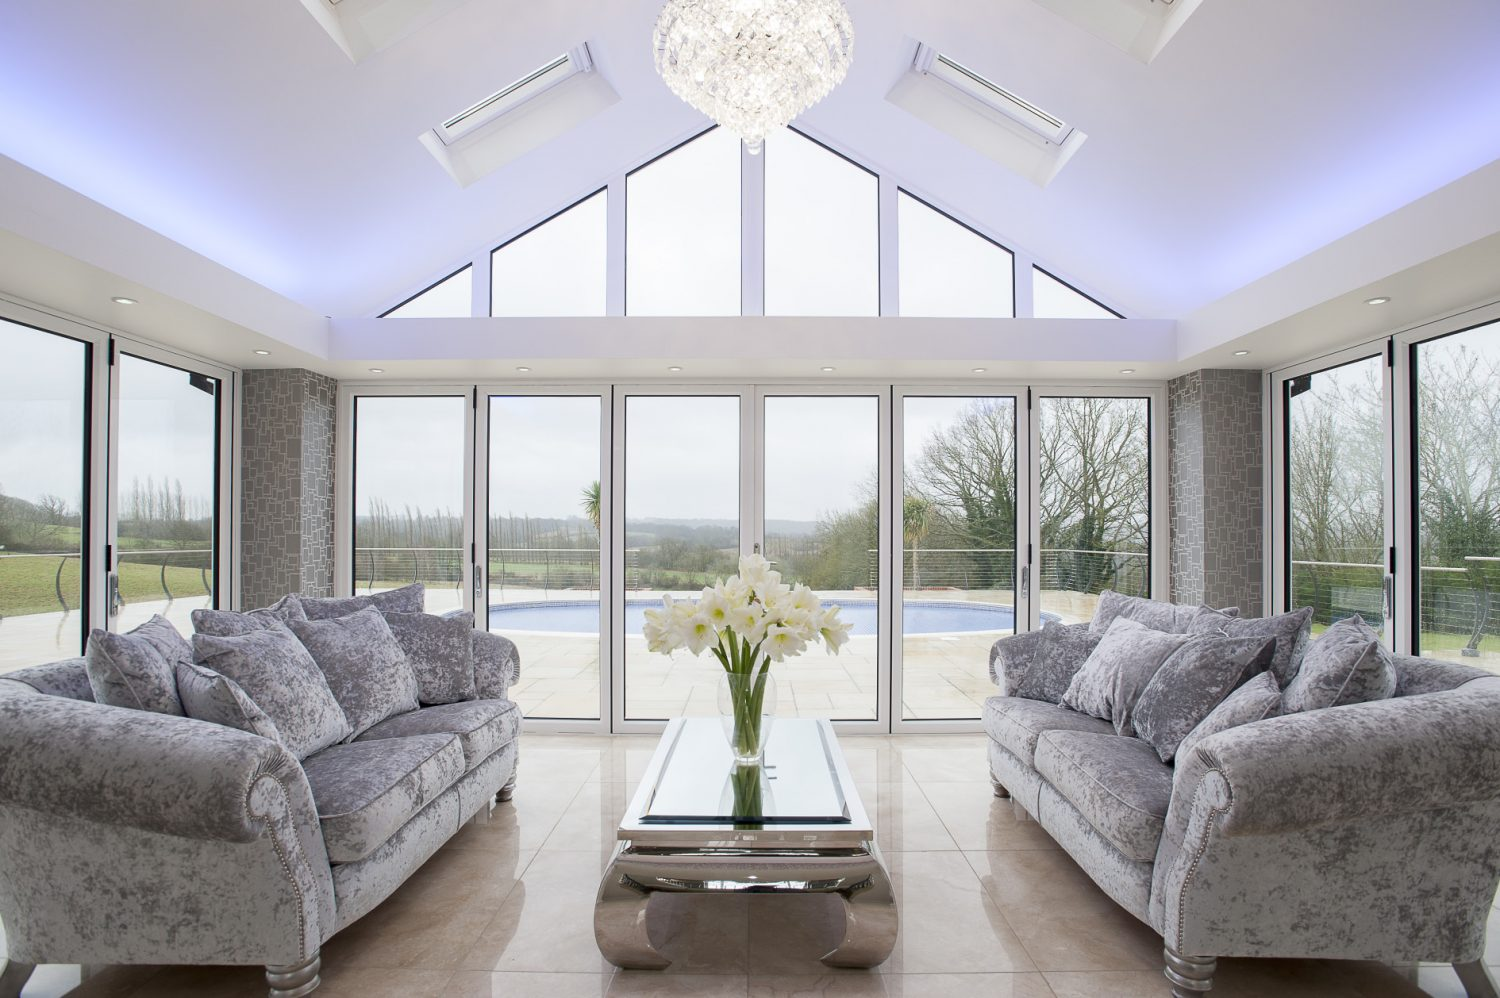 Bi-folding doors in the orangery lead out onto the terrace and its oval-shaped pool